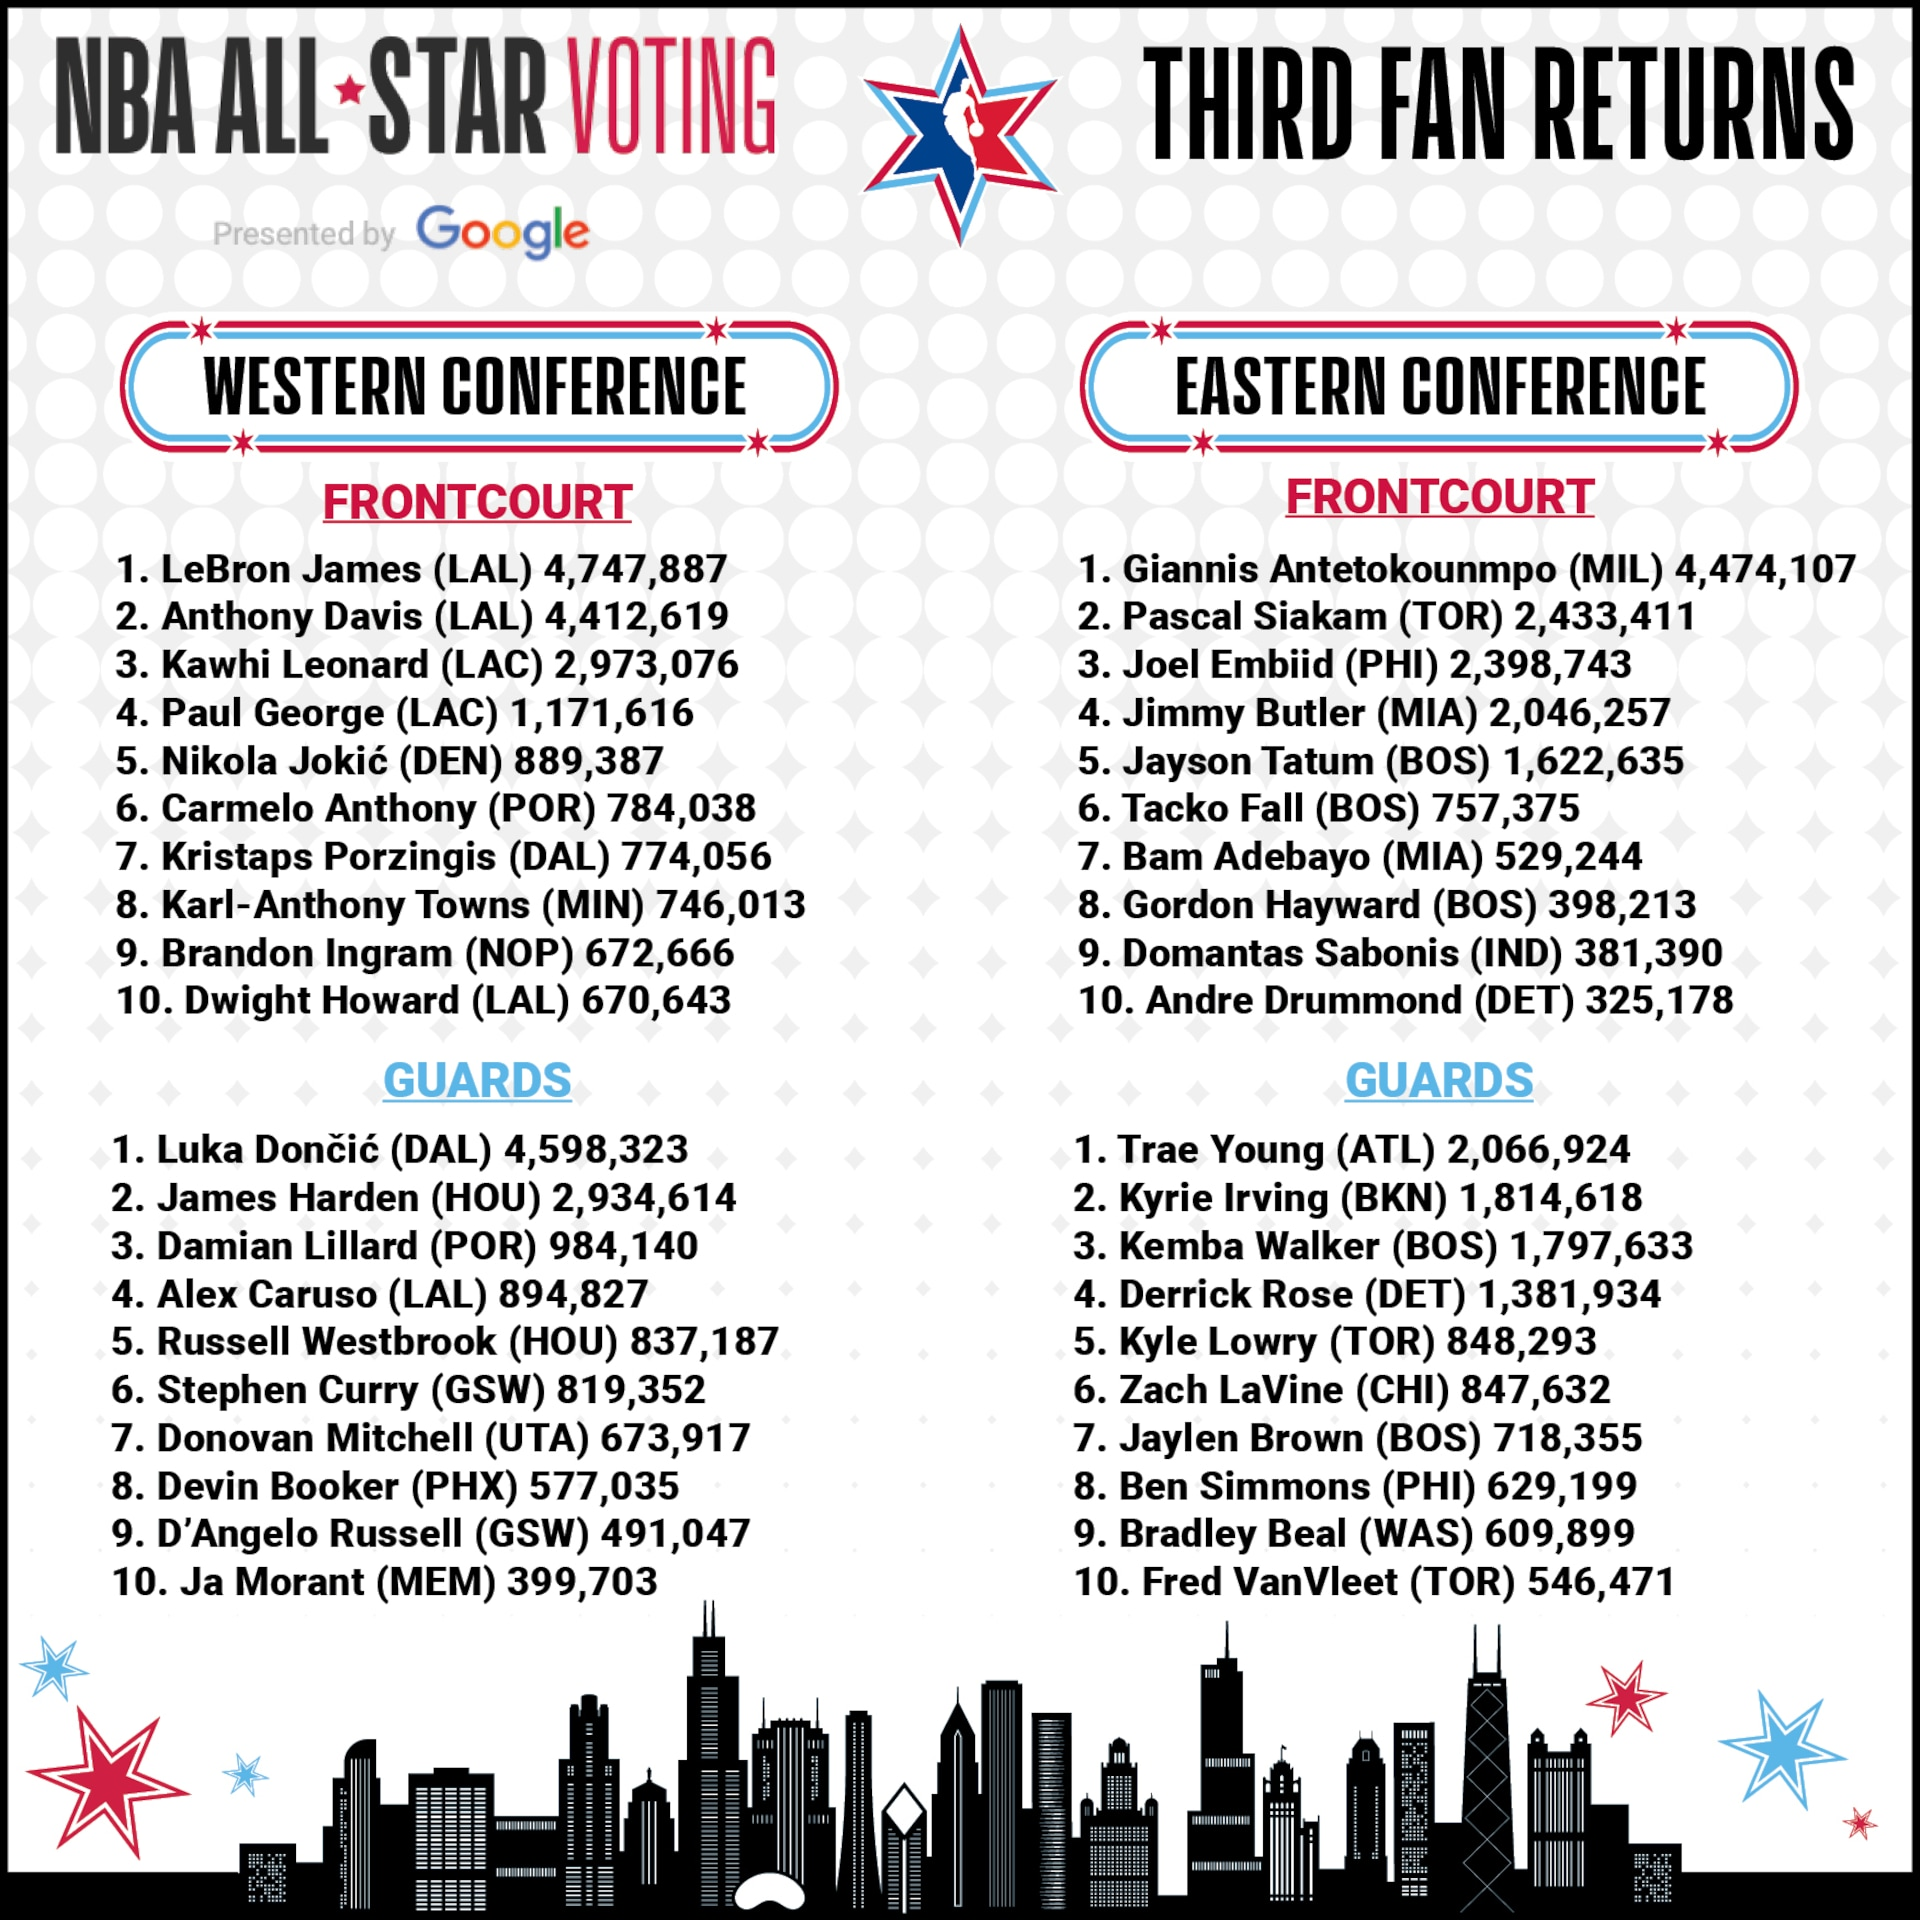 Lakers' LeBron James leads Mavericks' Luka Doncic with four days left to vote in NBA All-Star Voting presented by Google